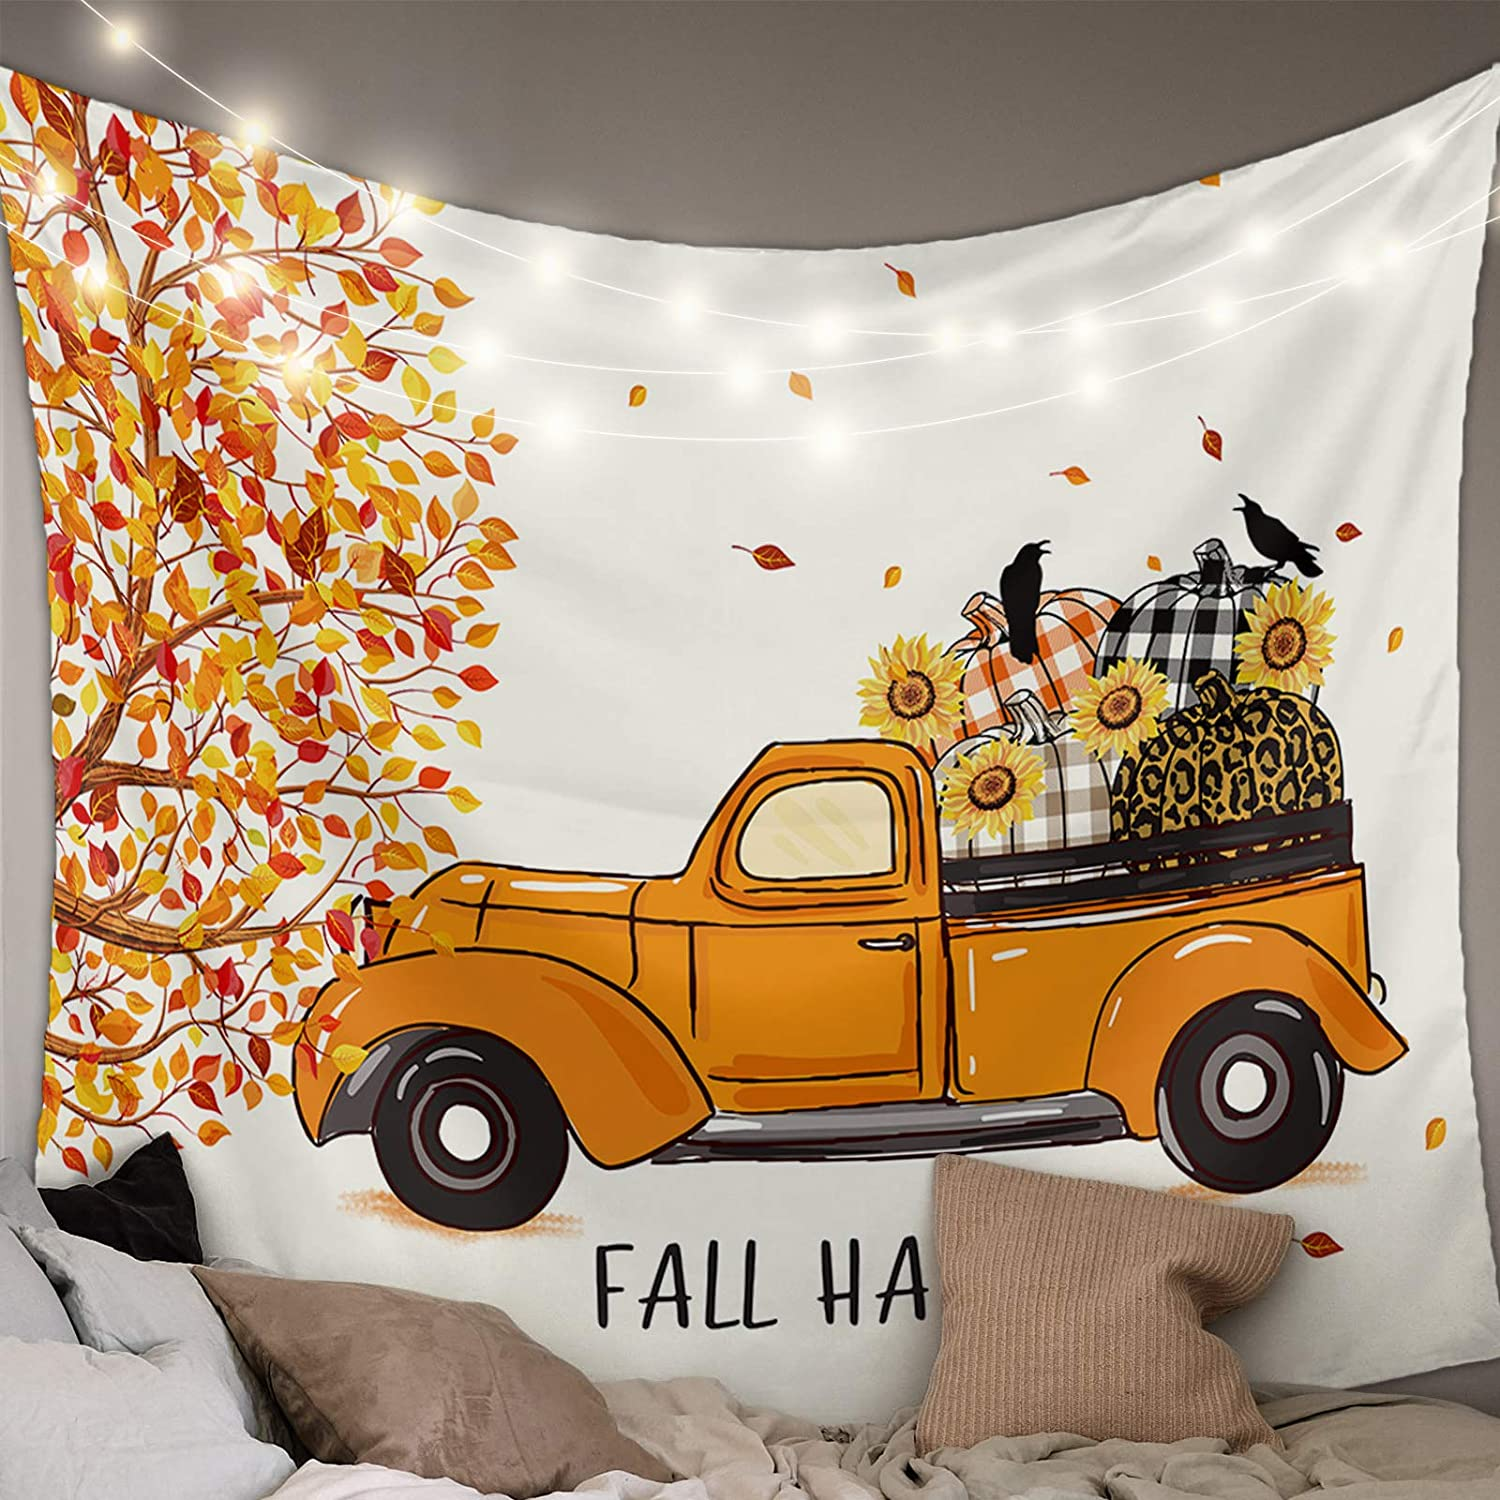 MuswannaA Tapestry Wall Hanging Fall safety Thanksgiving Plaid Max 48% OFF Harvest